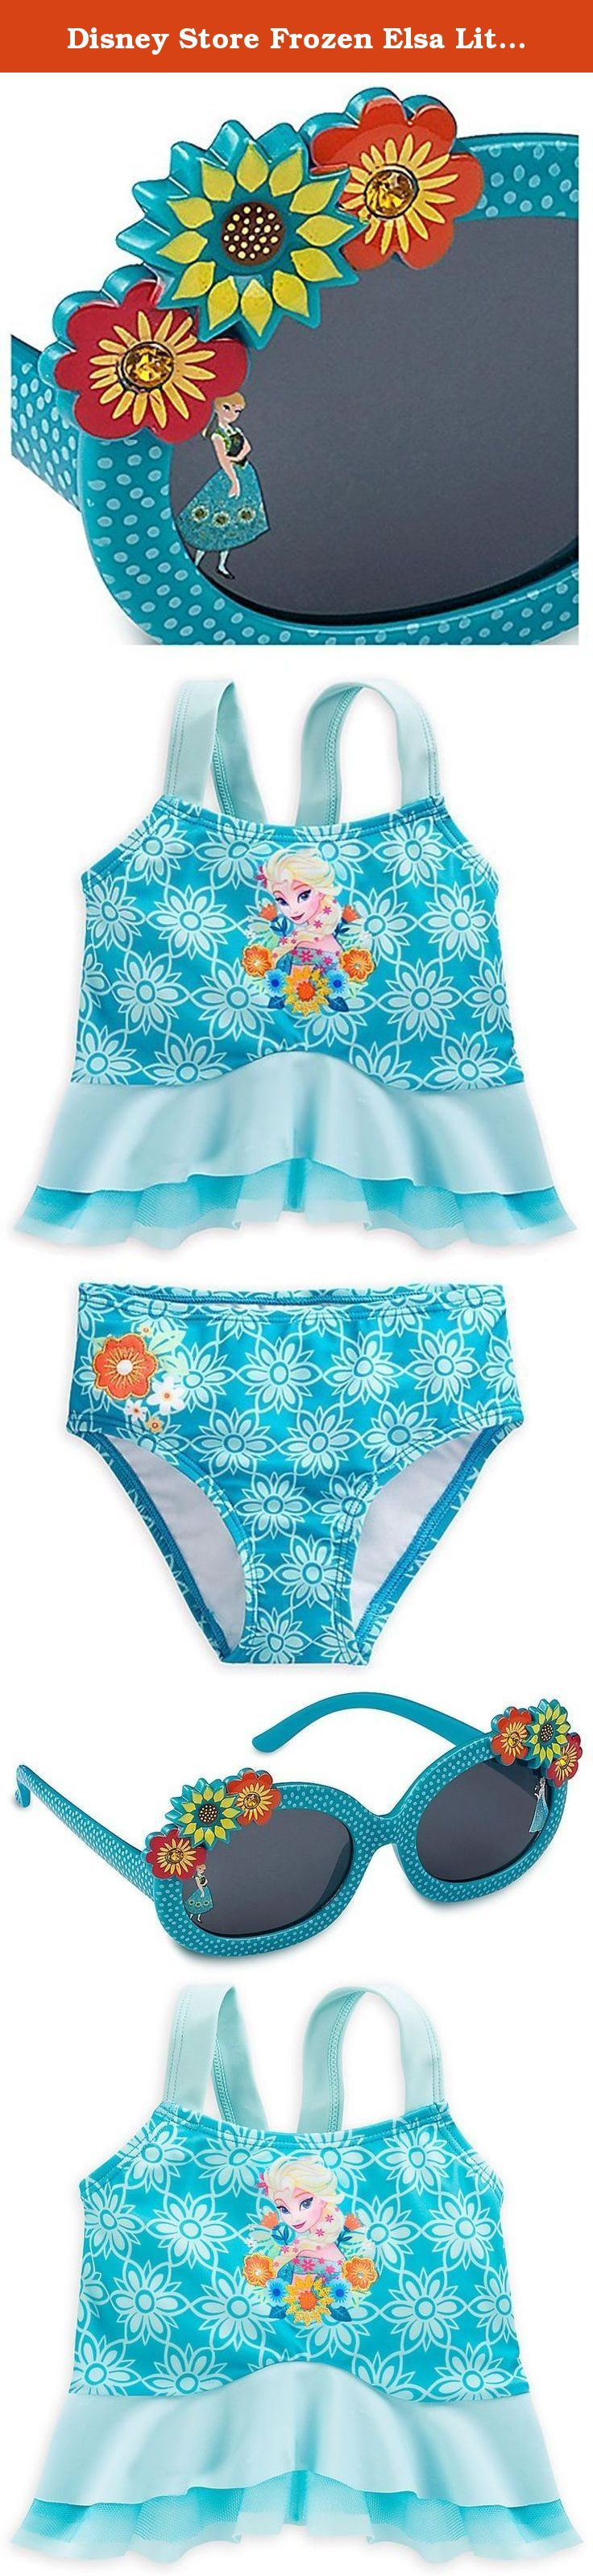 Disney Store Frozen Elsa Little Girls' Deluxe Swimsuit and Sunglasses Set, Size 7/8. After an eternal winter, what better way to relax than enjoying fun in the sun at the beach or pool. This two-piece Elsa Deluxe Swimsuit features Frozen's icy maiden, golden embroidered details and provides UPF 50+ UV protection. Shield those eyes on sunny days in Arendelle with these Frozen sunglasses. Anna and Elsa are pictured on separate lenses, which are framed with molded flowers and a snowy design...